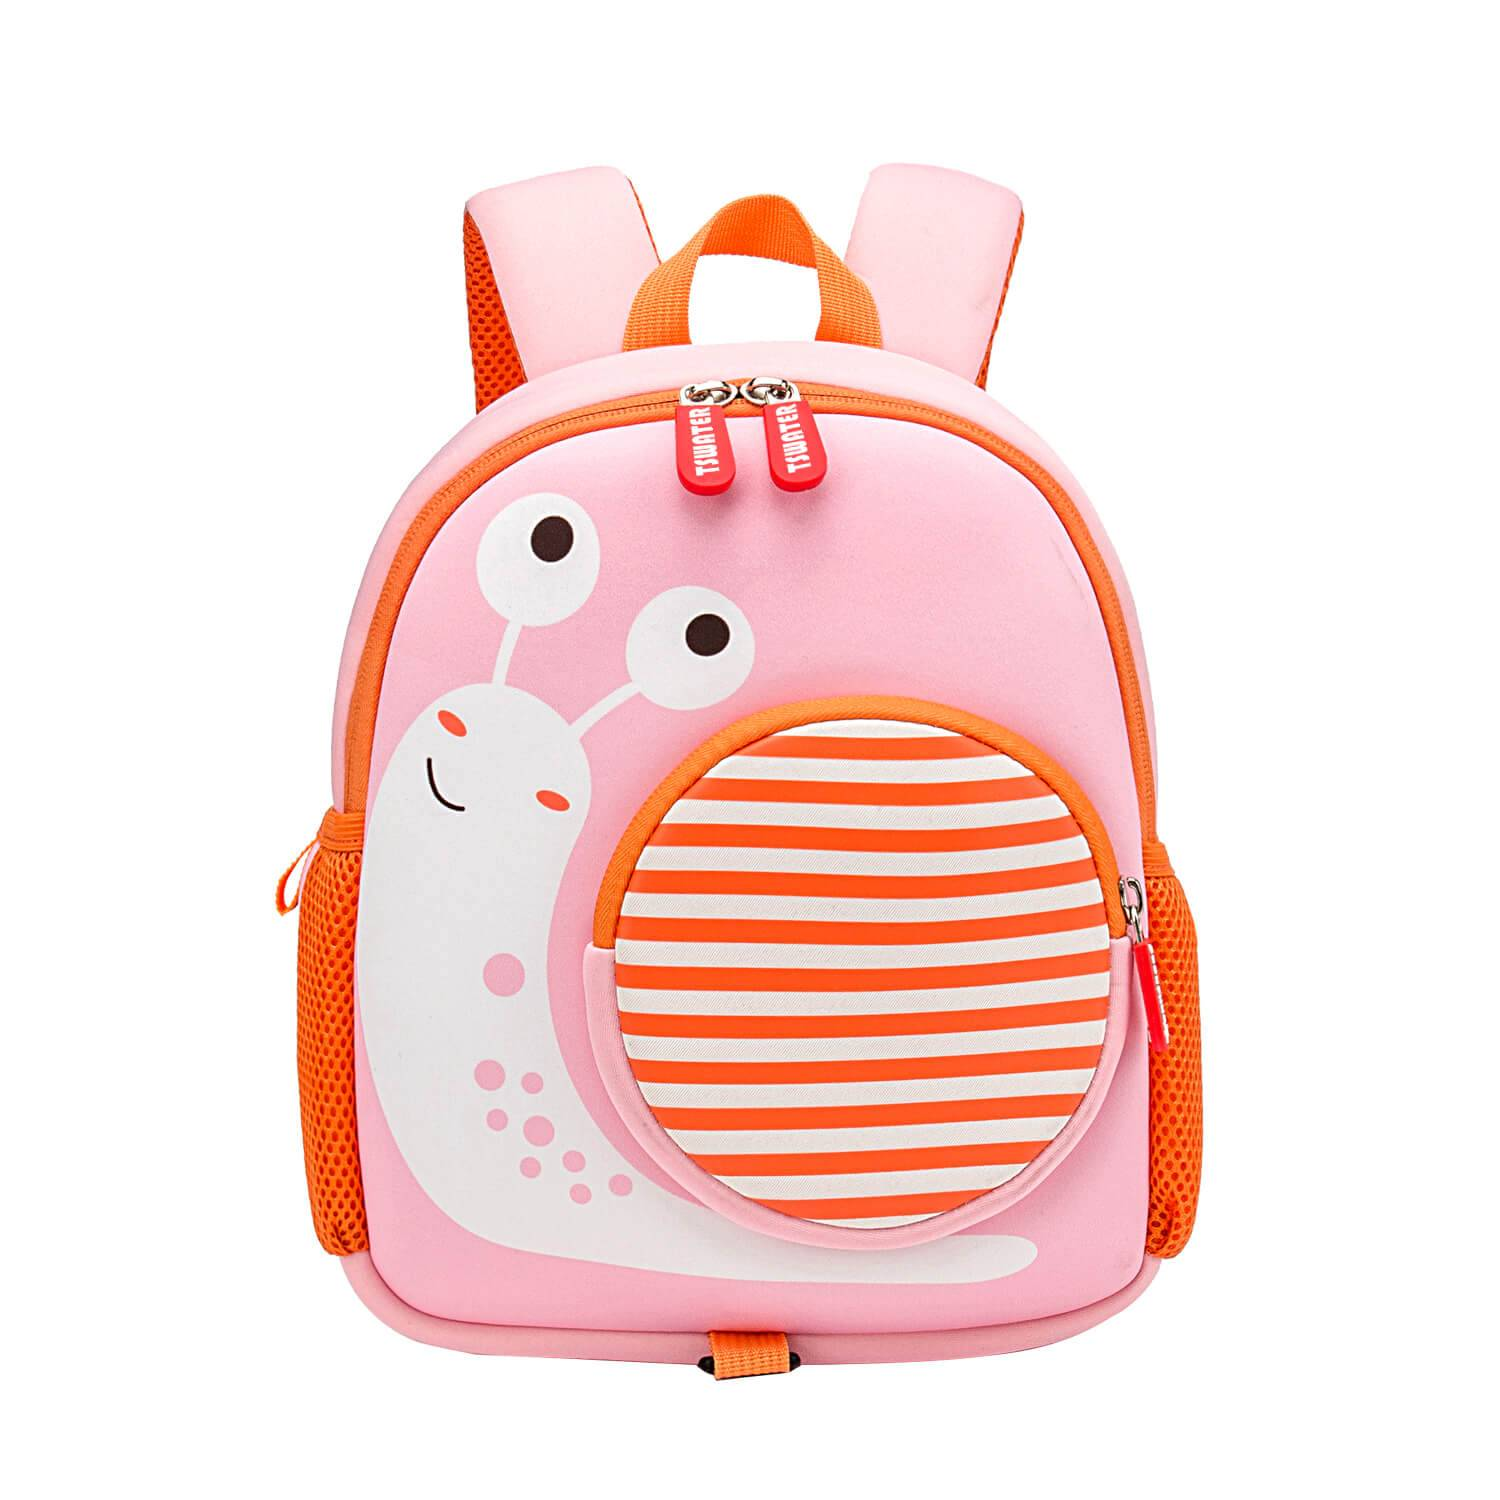 Girls kindergarten baby school bag princess shoulder snail backpack Featured Image